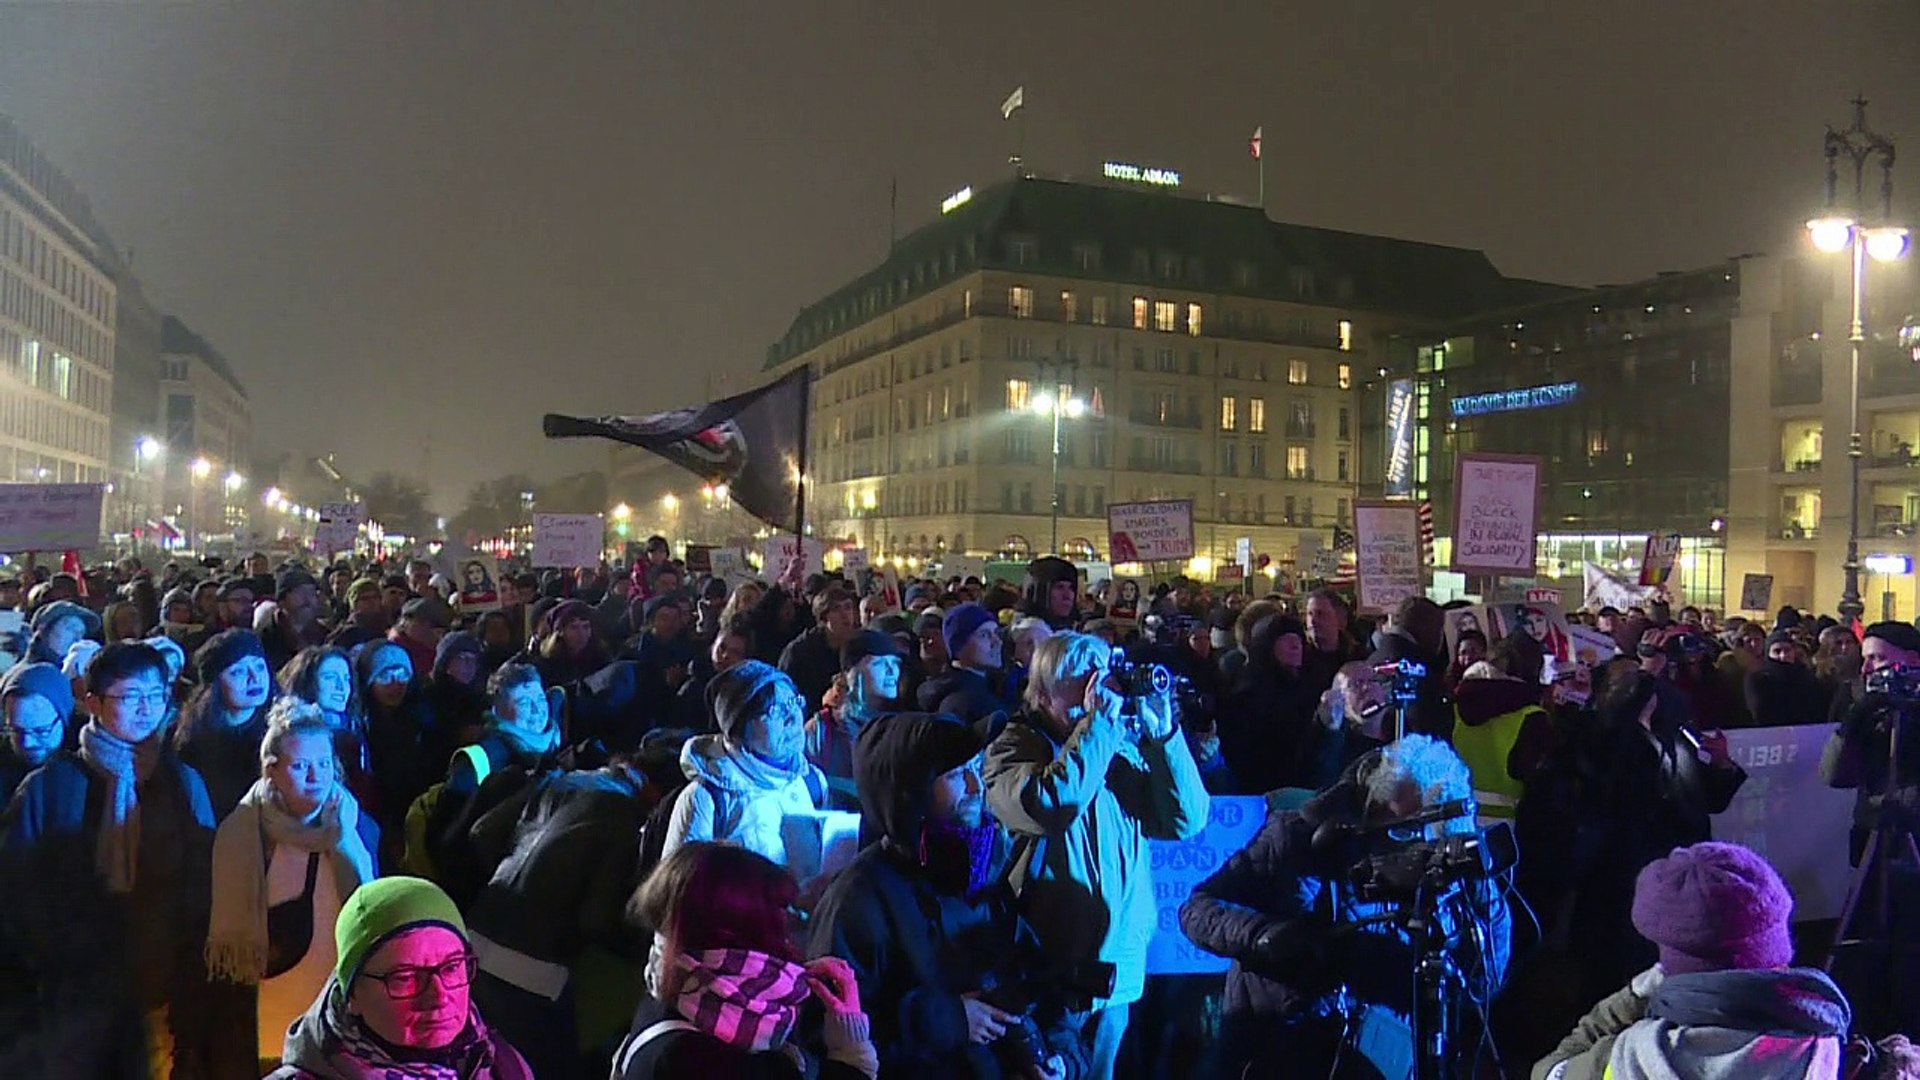 Anti-Trump-Demo in Berlin: Gegen Hass, gegen Trump